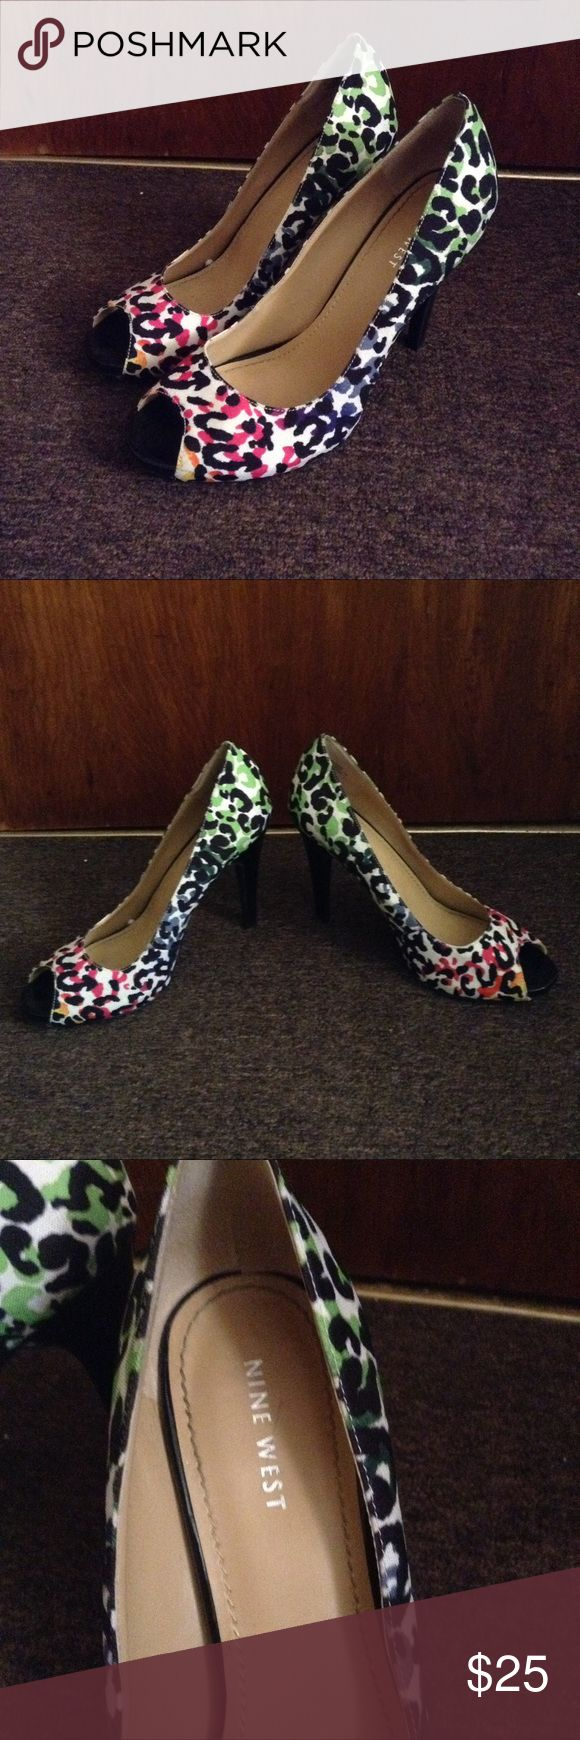 Rainbow Cheetah Heels Perfect statement shoes. Tag says 9 but fits more like an 8.5. Only worn once or twice. Nine West Shoes Heels